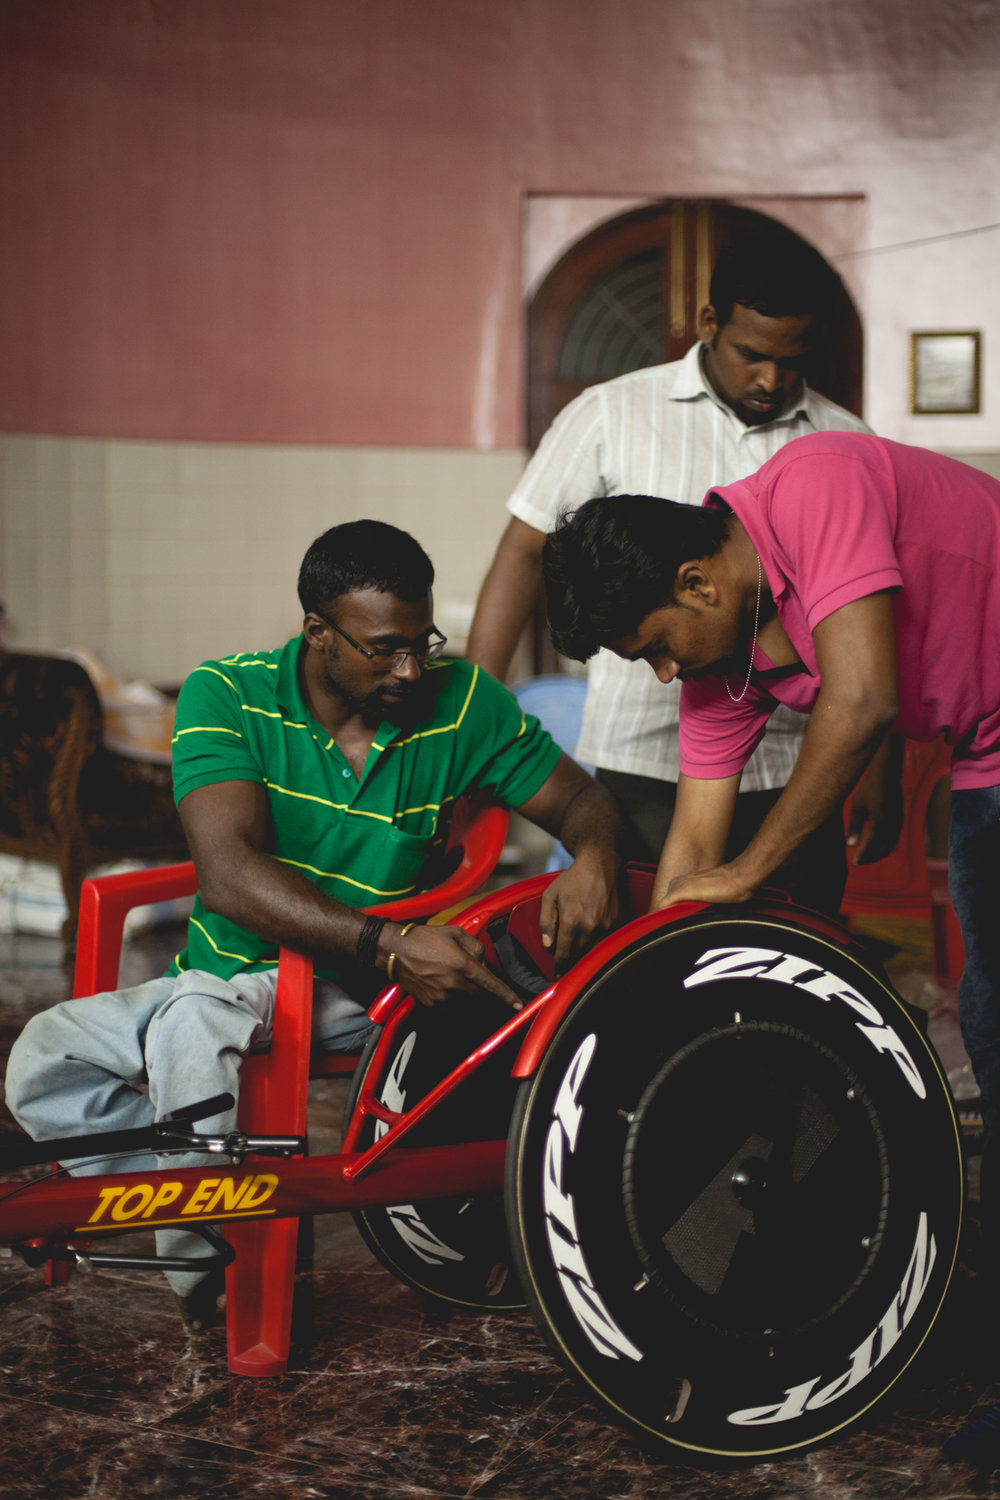 Unveiling and assembling of the Ferrari of sports wheelchairs!